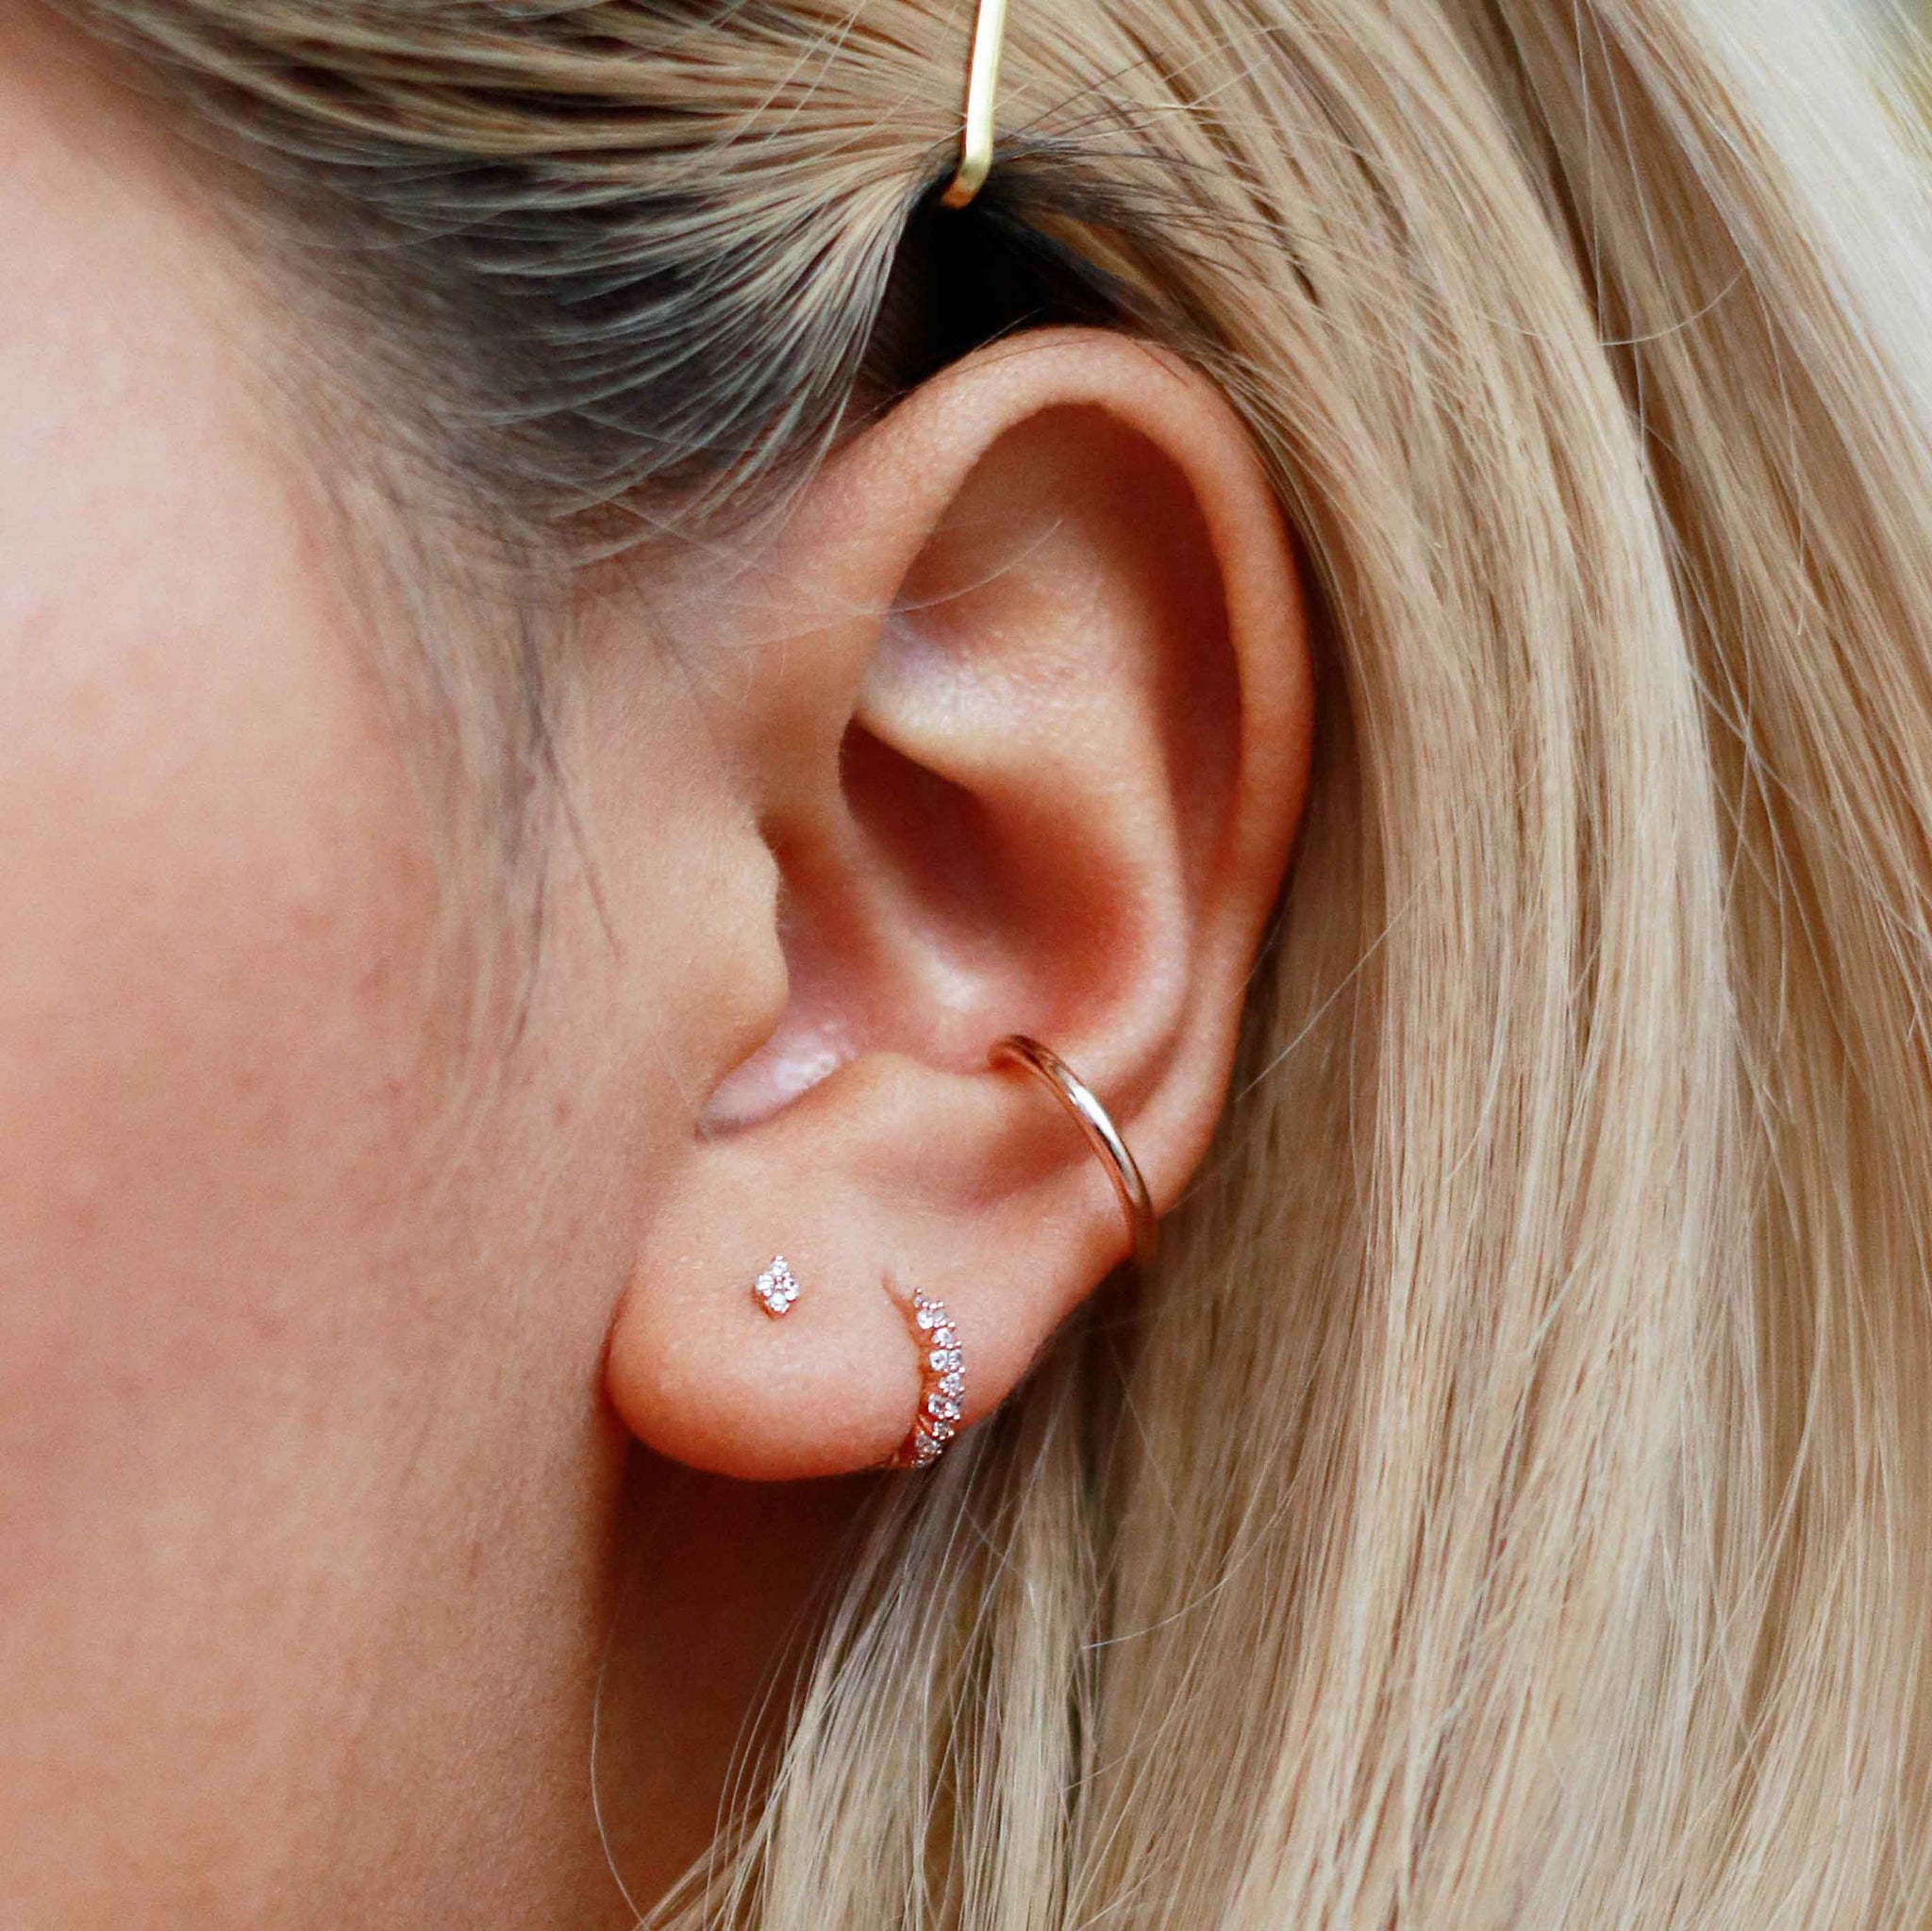 Dainty Crystal Clicker in Rose Gold worn in second lobe piercing